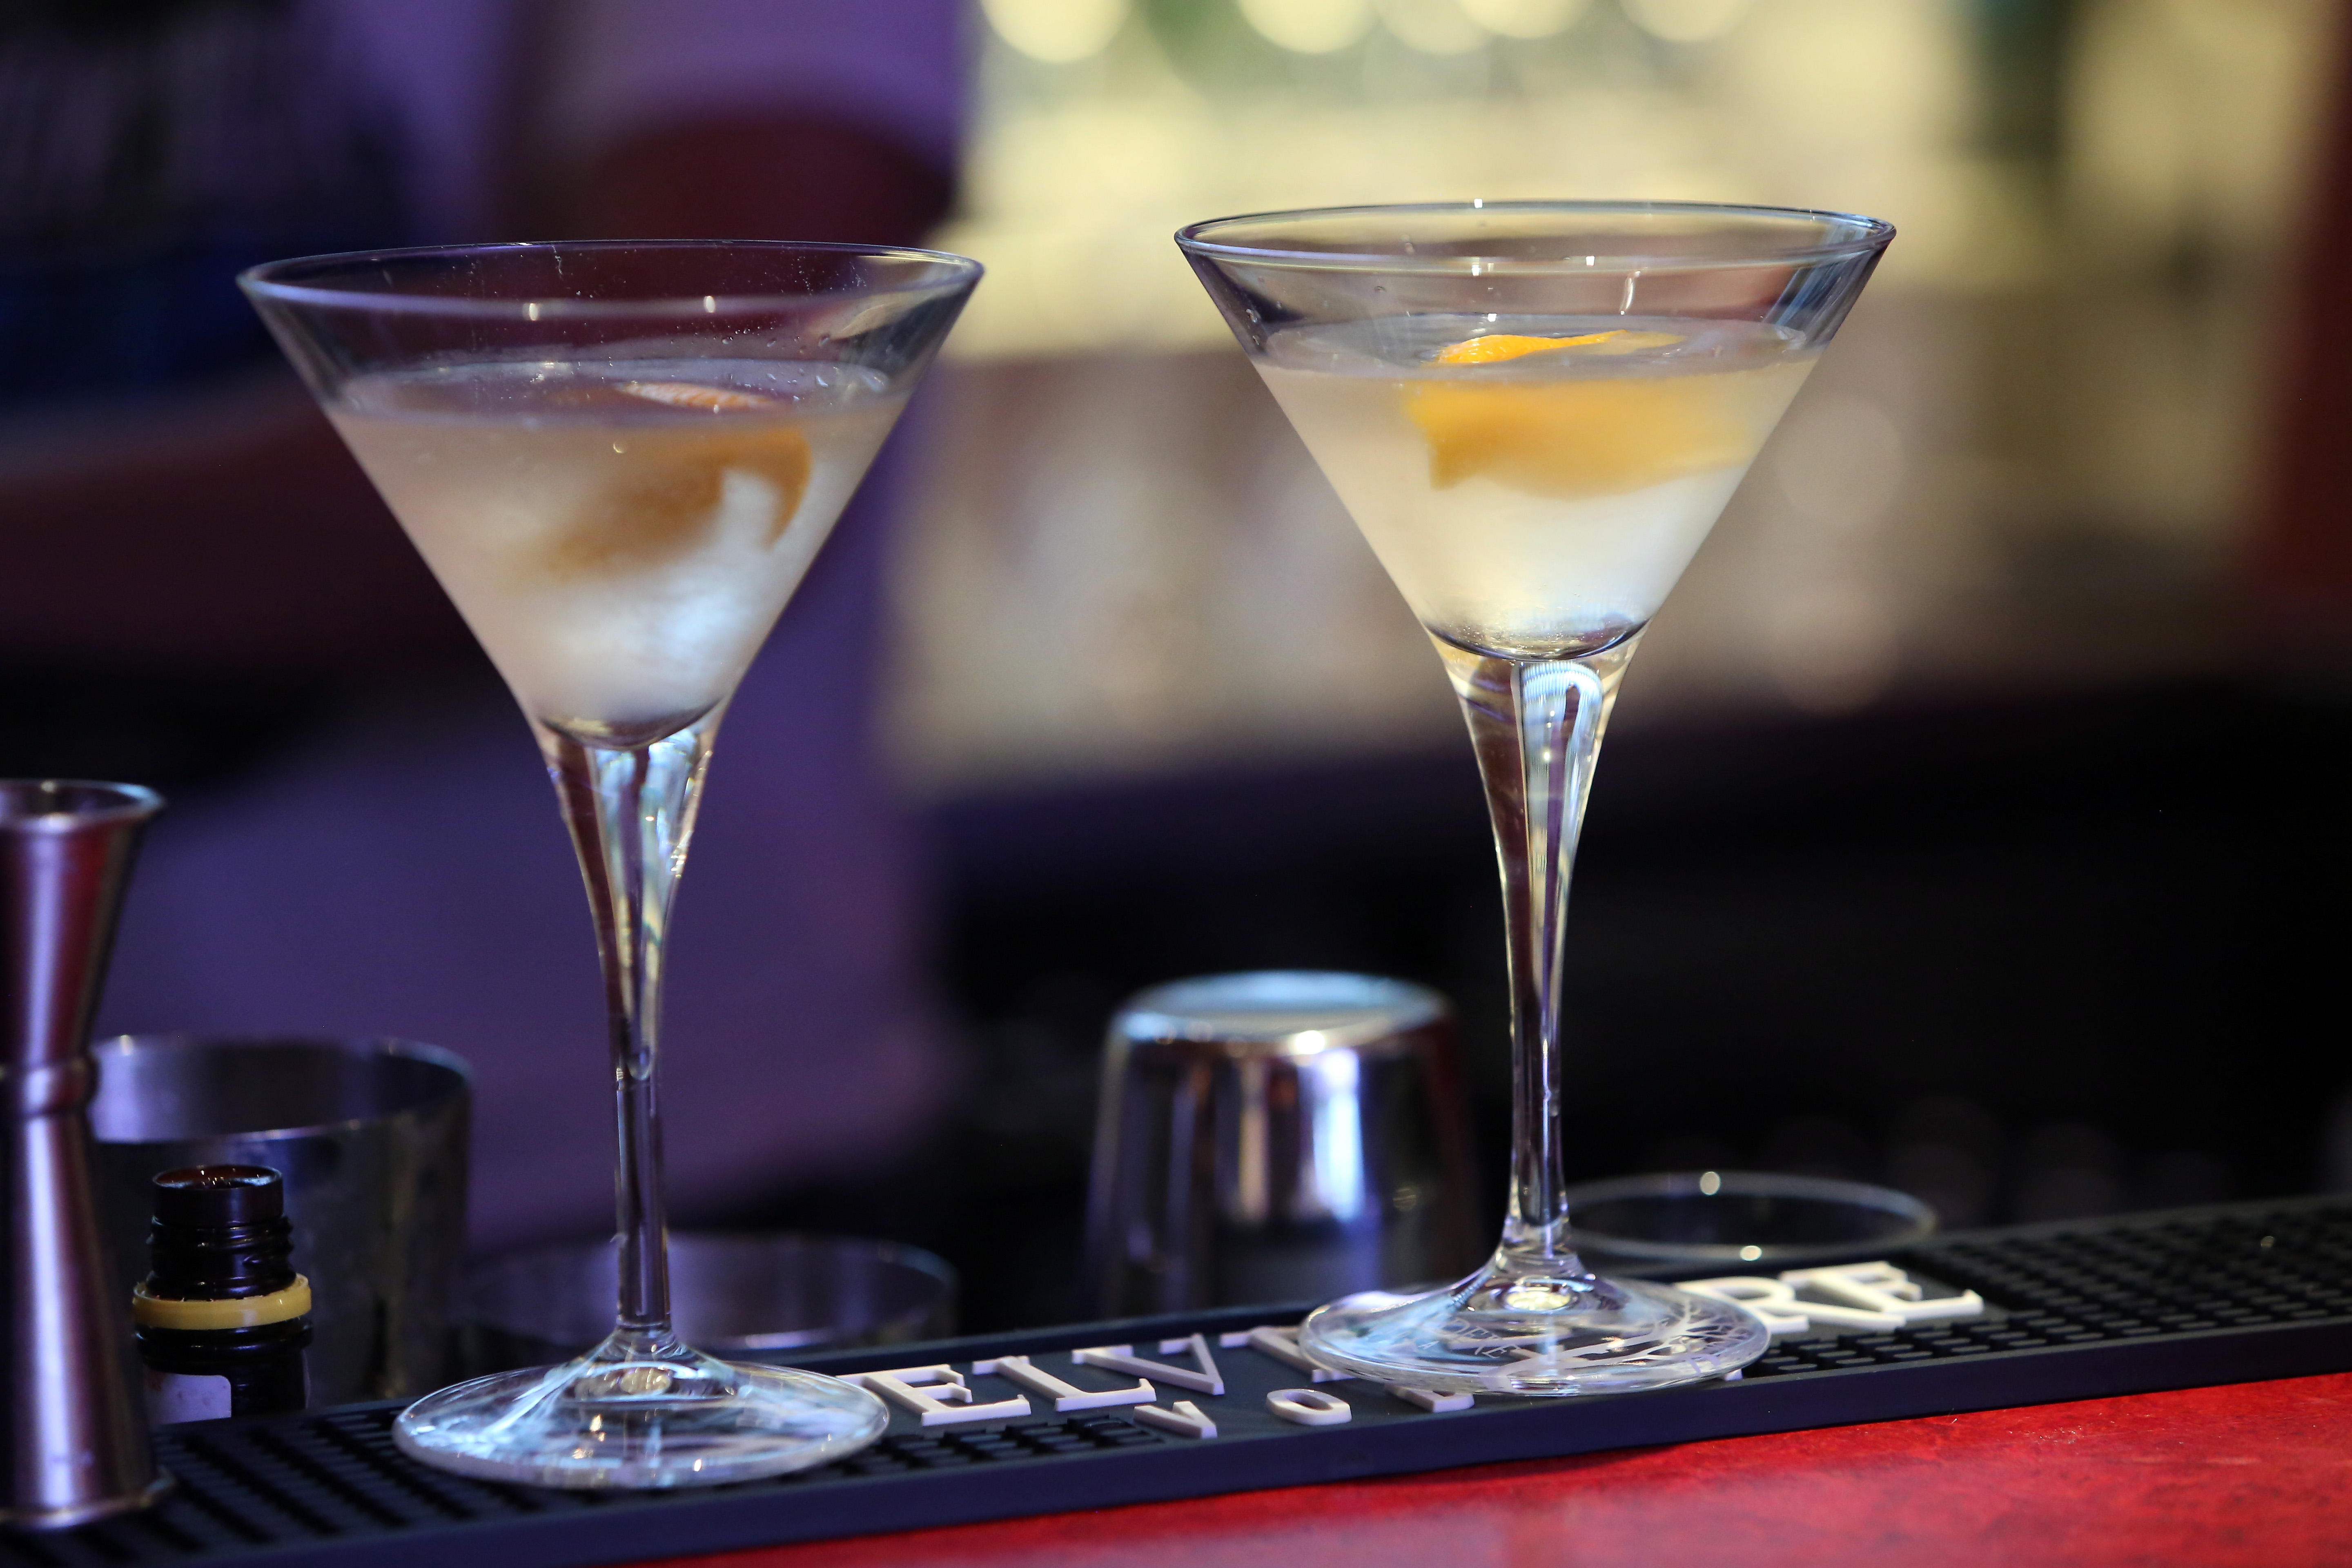 legal drink age should stay the Why the legal drinking age should stay at twenty-one alcohol is a depressant that affects your vision, coordination, reaction time, multitasking ability, judgment, and decision-making (short and long term).